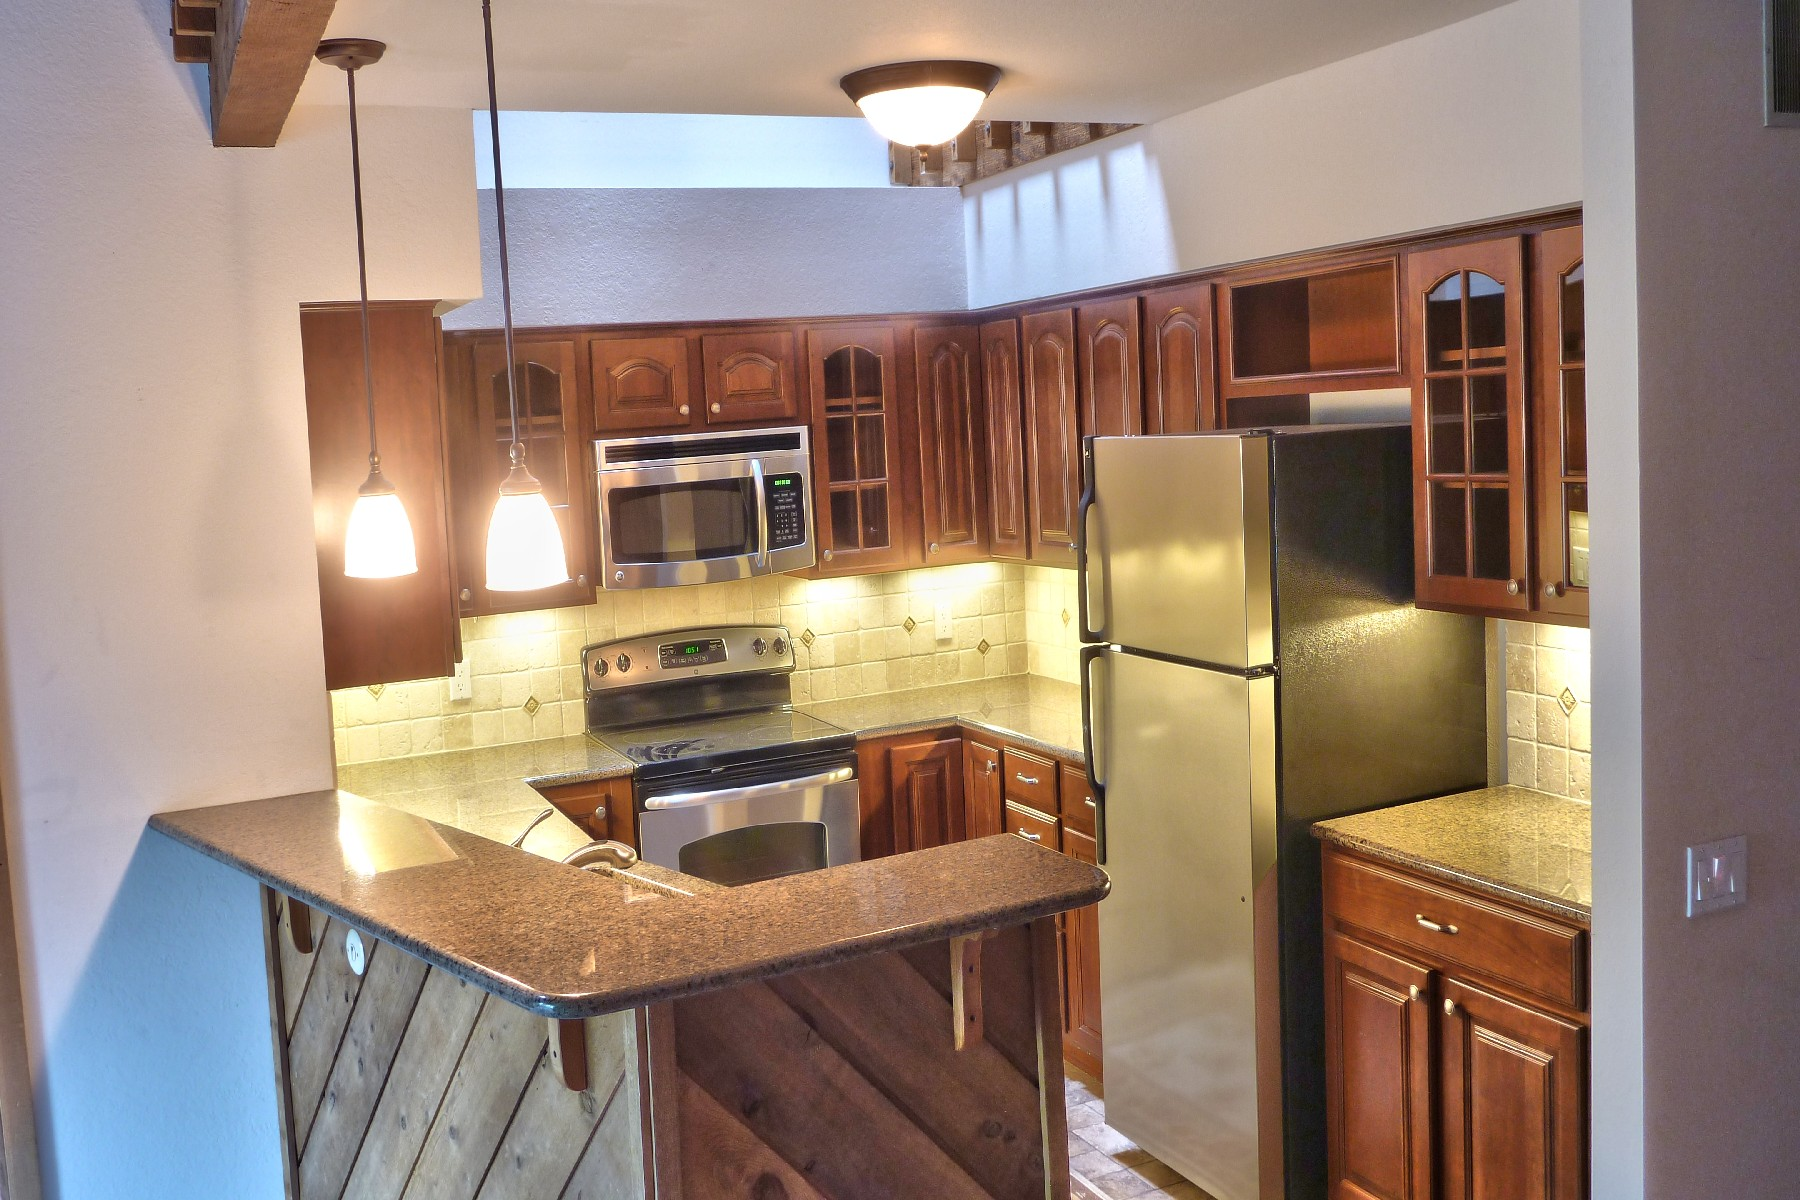 Additional photo for property listing at Affordable Two Bedroom Condominium 4314 Fairway Nine Dr Sun Valley, Idaho 83353 United States